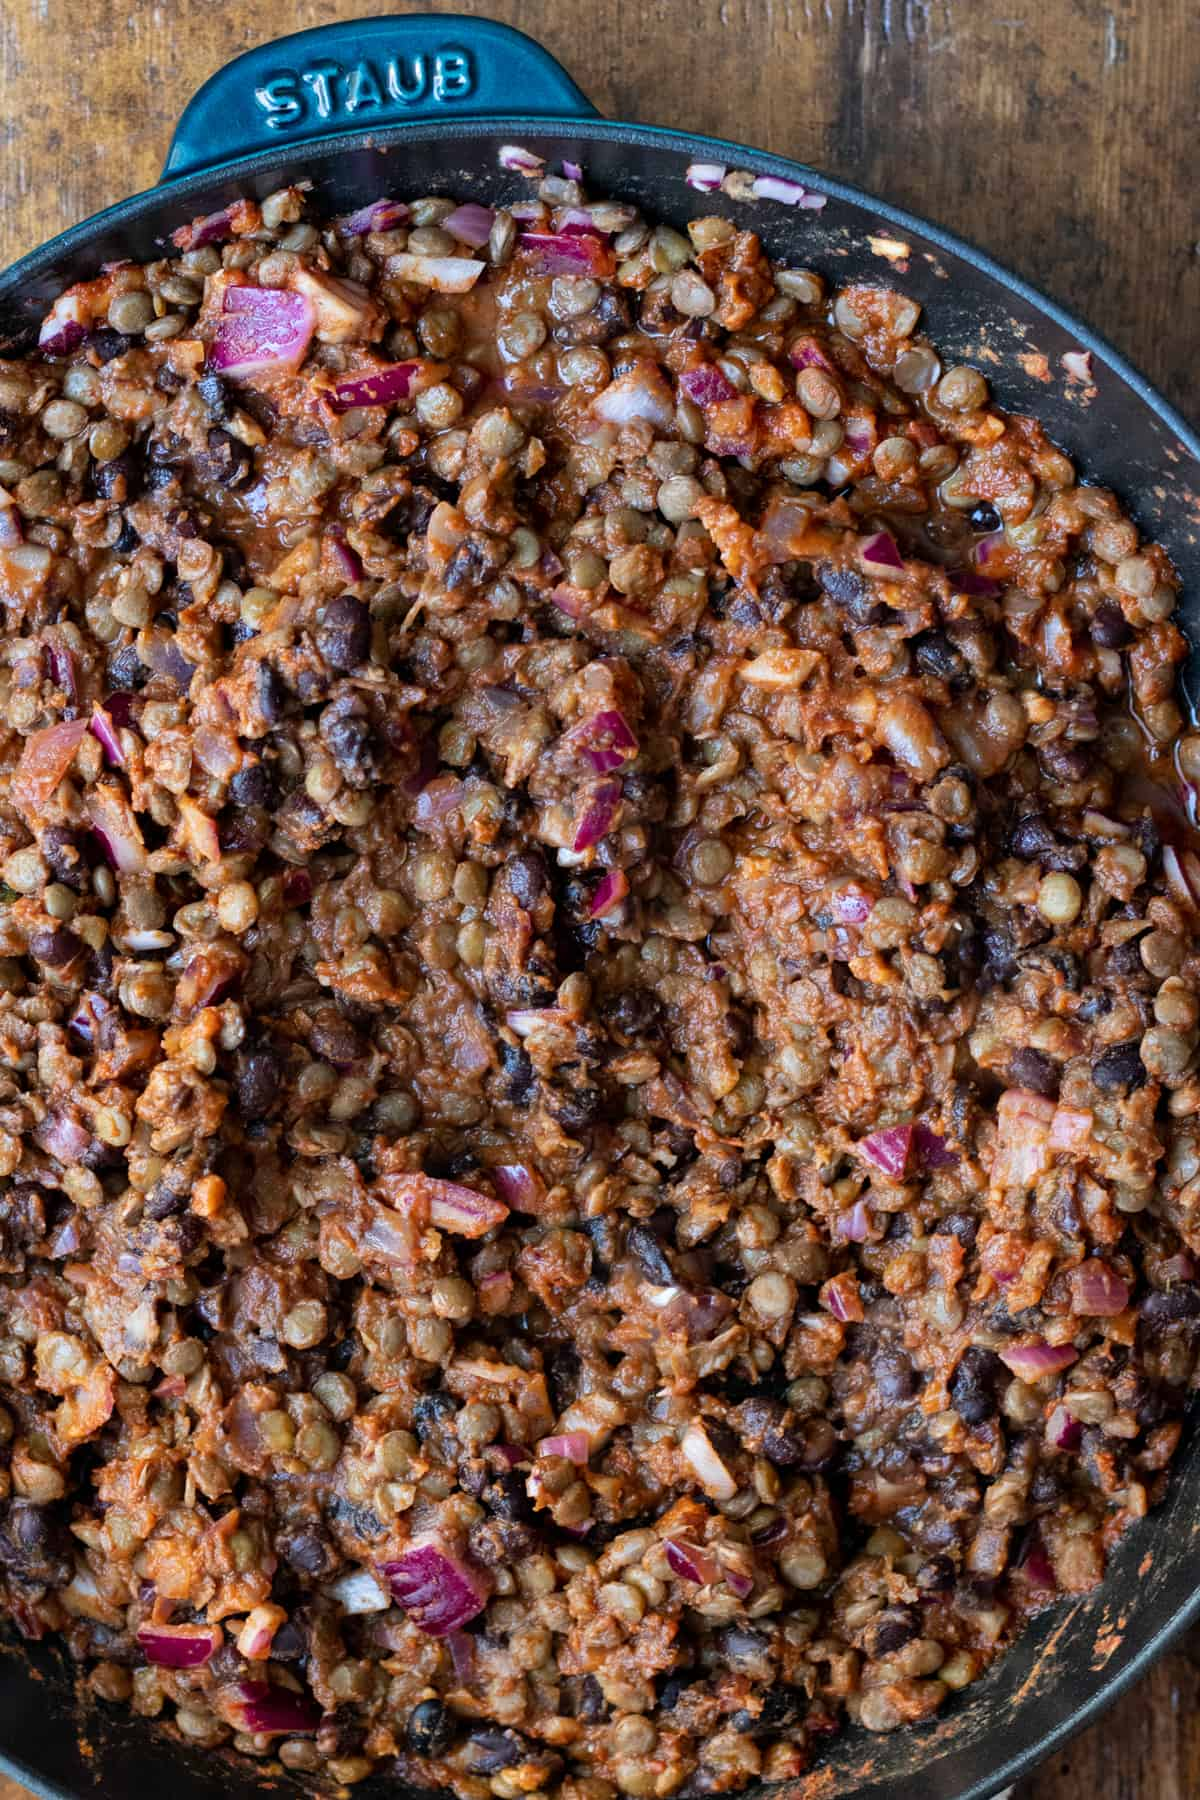 lentil and black bean mixture in cast iron skillet tossed in adobo sauce